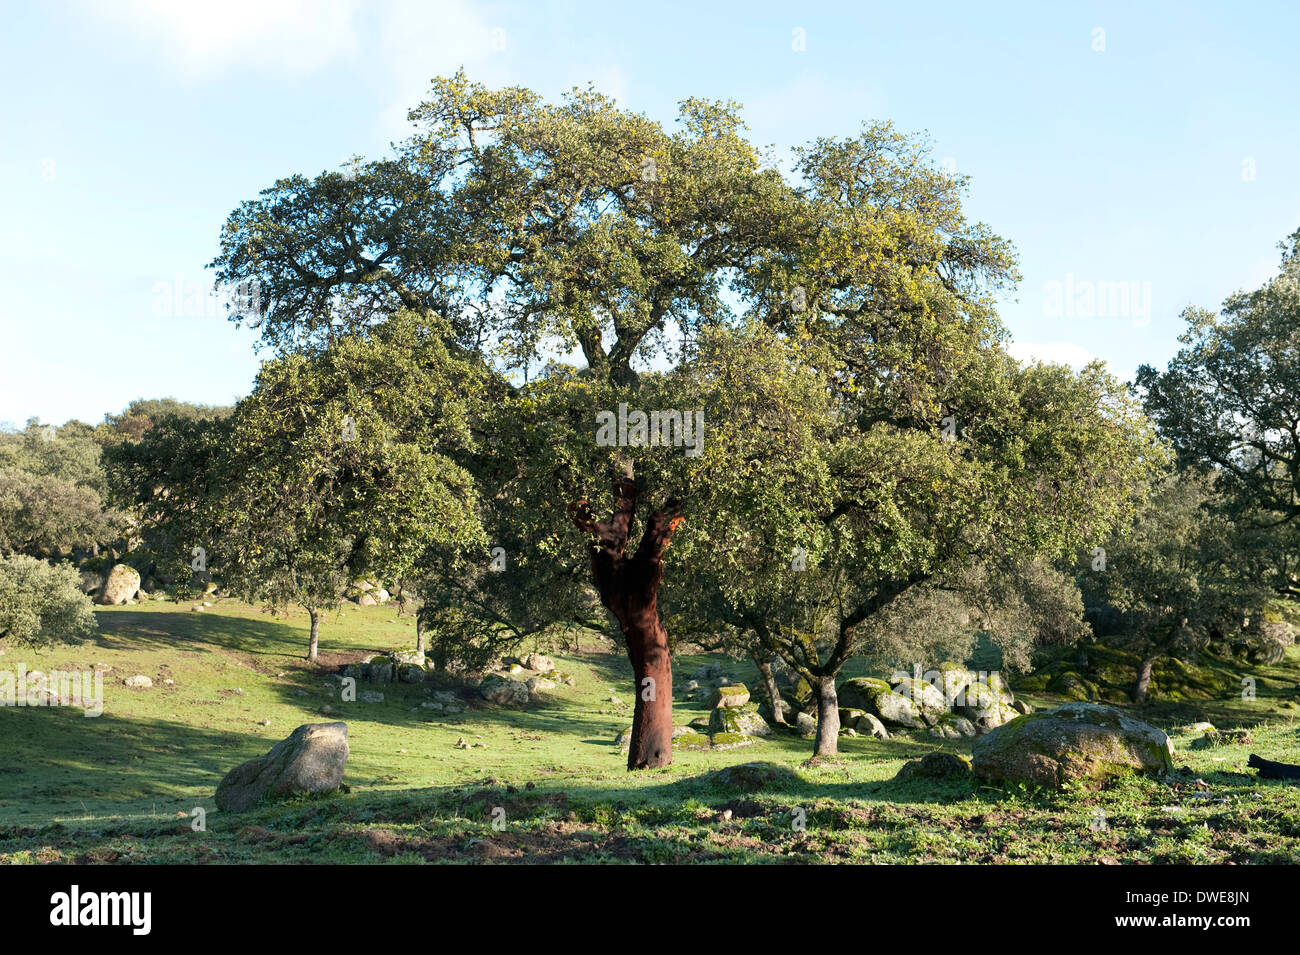 Cork Oak Tree Quercus Suber Andalucia Spain Stock Royalty Free Image Alamy